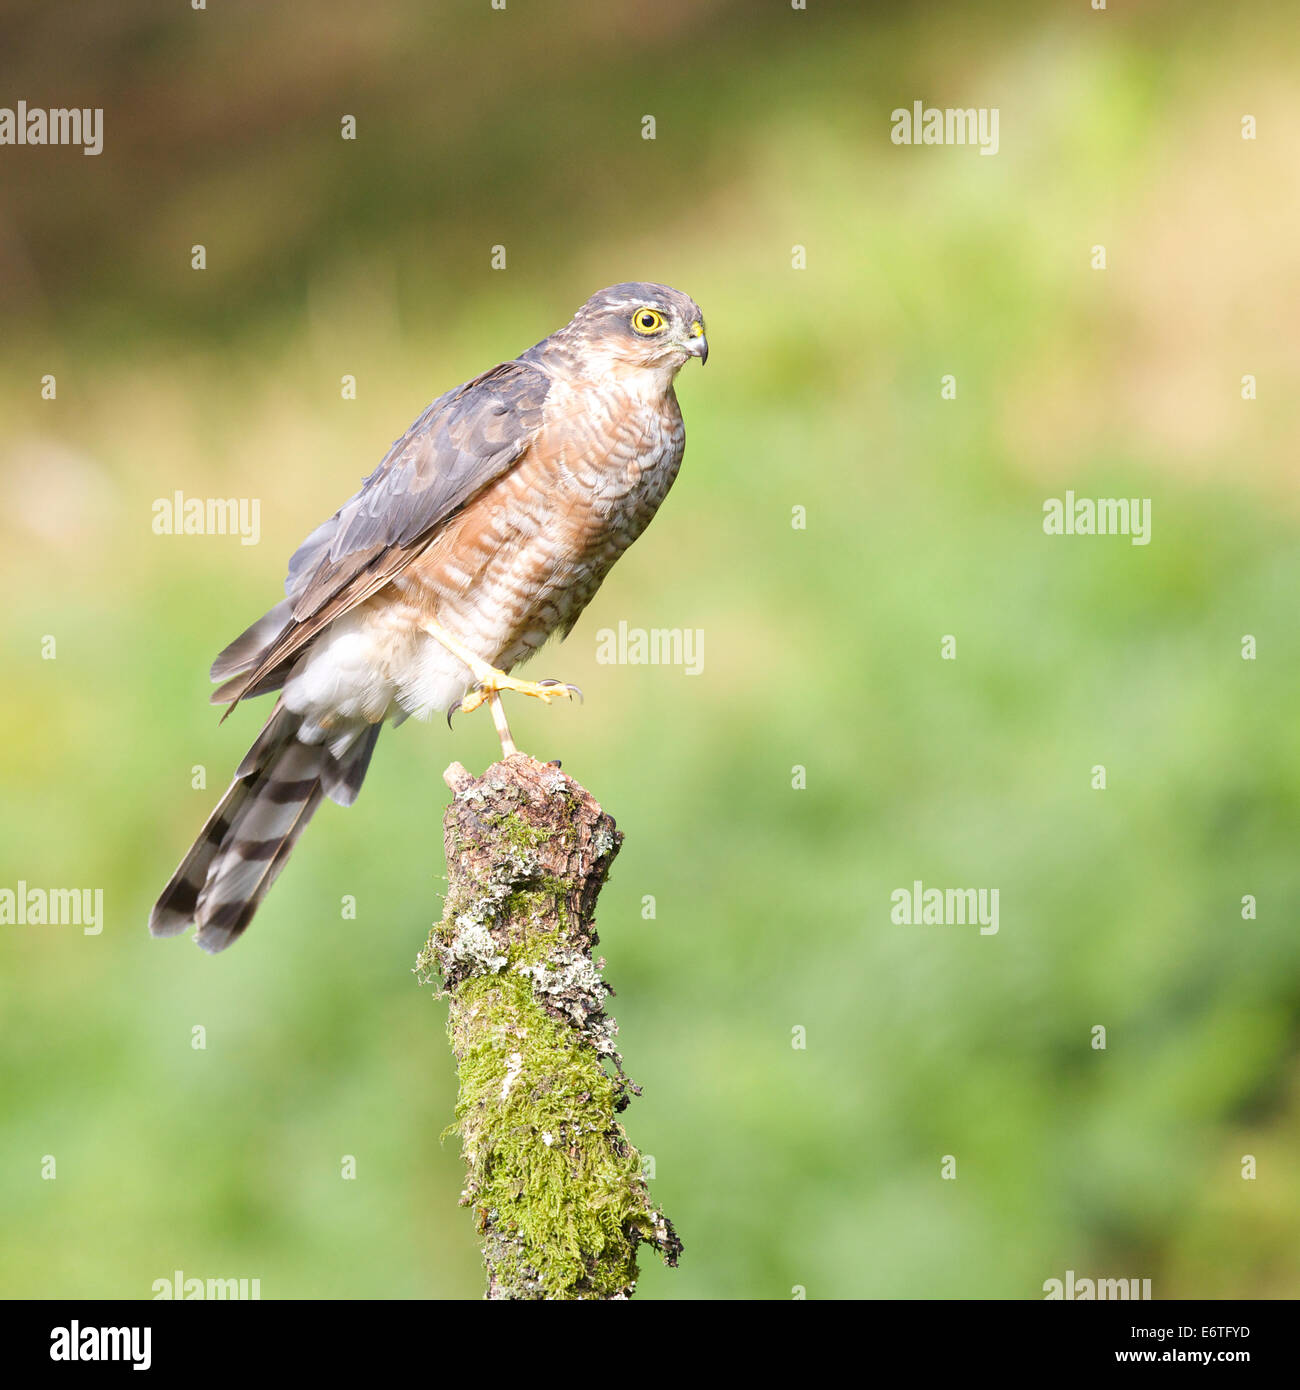 Sparrowhawk stretches its talons in readiness for another strike on some unsuspecting prey #3354 - Stock Image